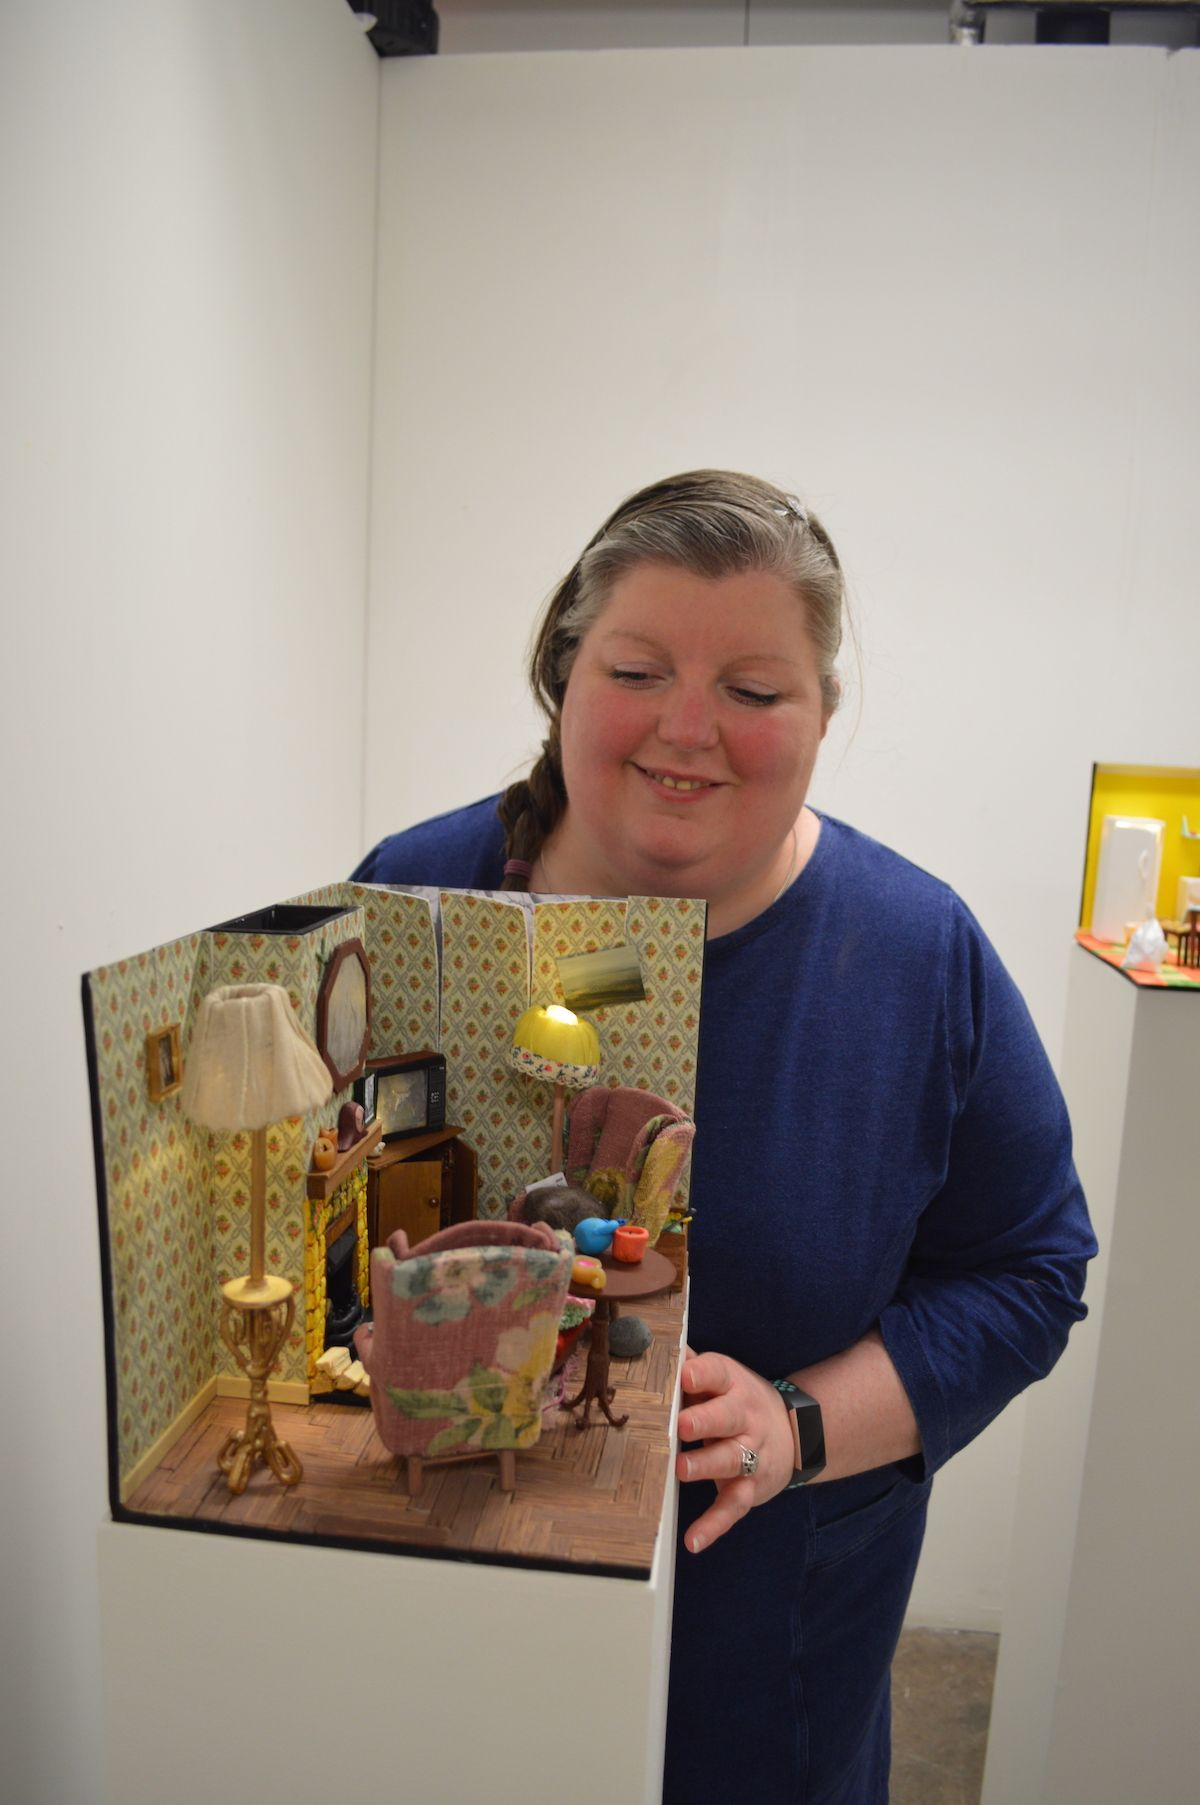 EXHIBITION BY EMAIL: Oonagh McAteer\'s work in the Arts for All exhibition in Cityside.